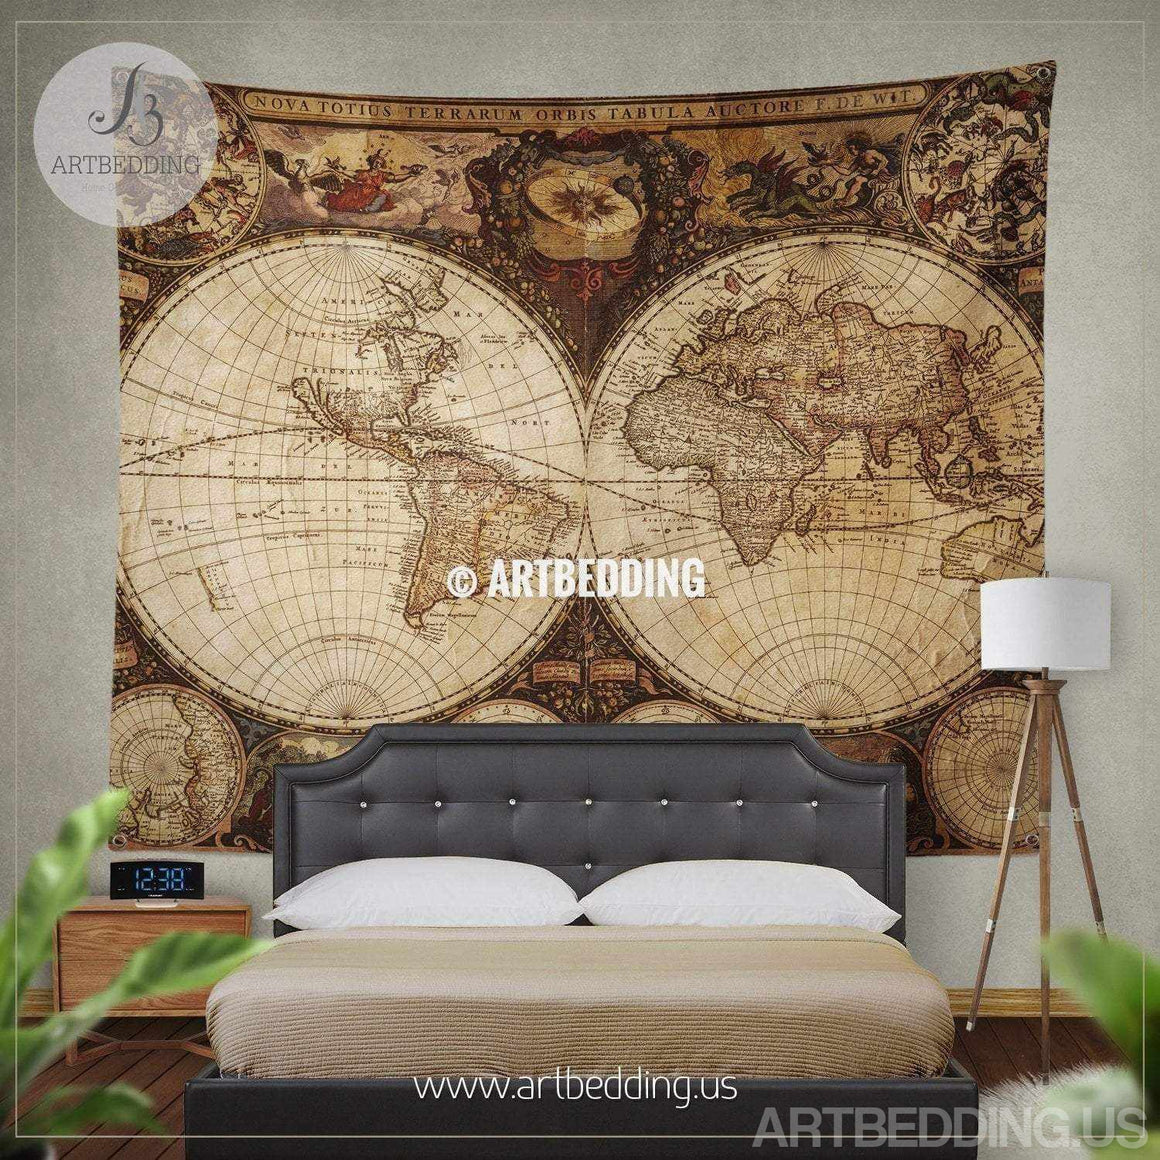 Vintage world map wall tapestry, Ancient world map wall hanging, vintage old map wall decor, Historical map wall art print Tapestry